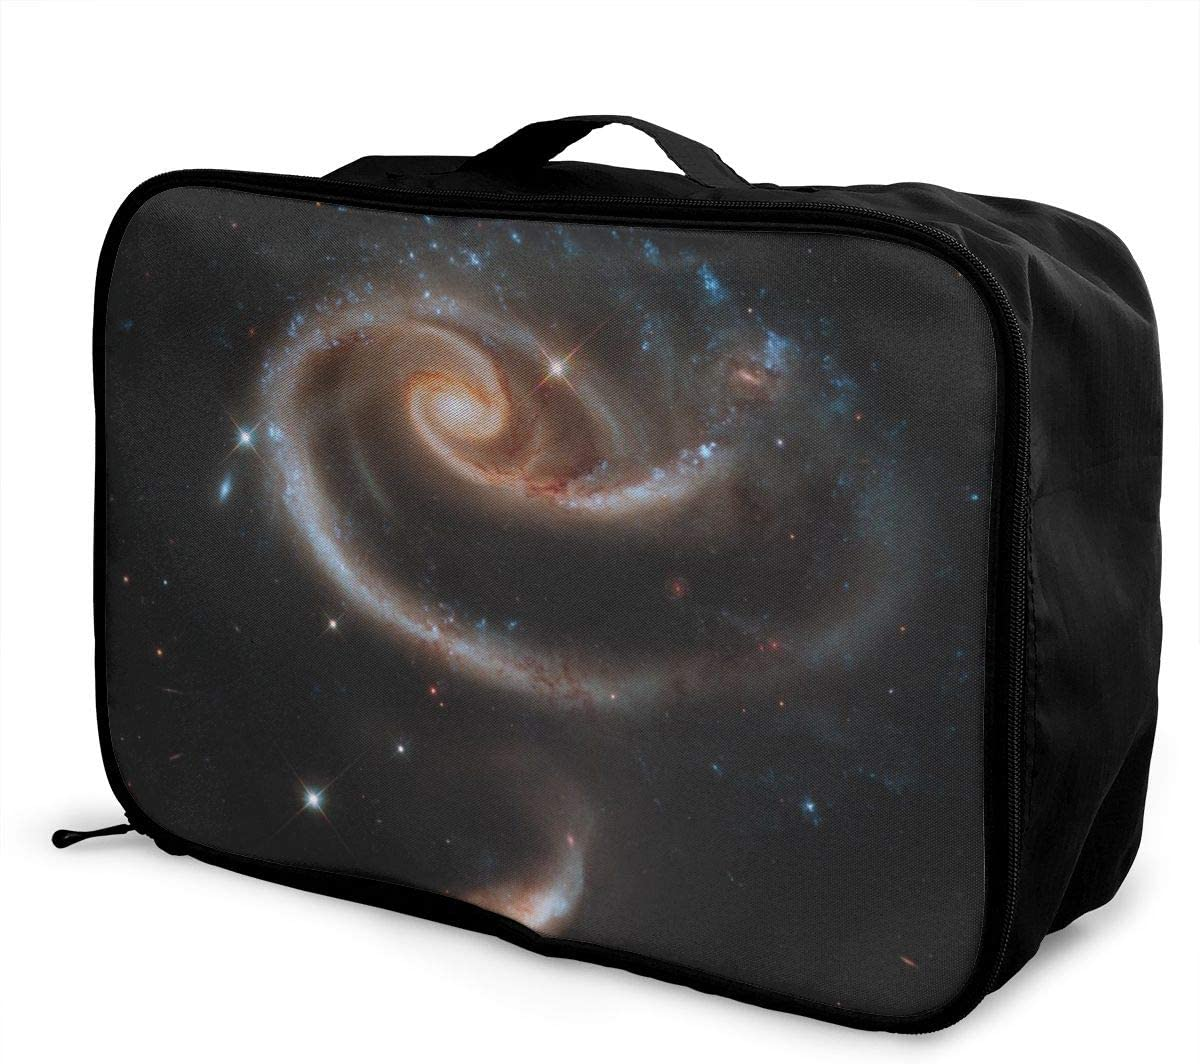 Yunshm Stars Funnel Spiral Cluster Space Galaxy Universe Astronomy Personalized Trolley Handbag Waterproof Unisex Large Capacity For Business Travel Storage